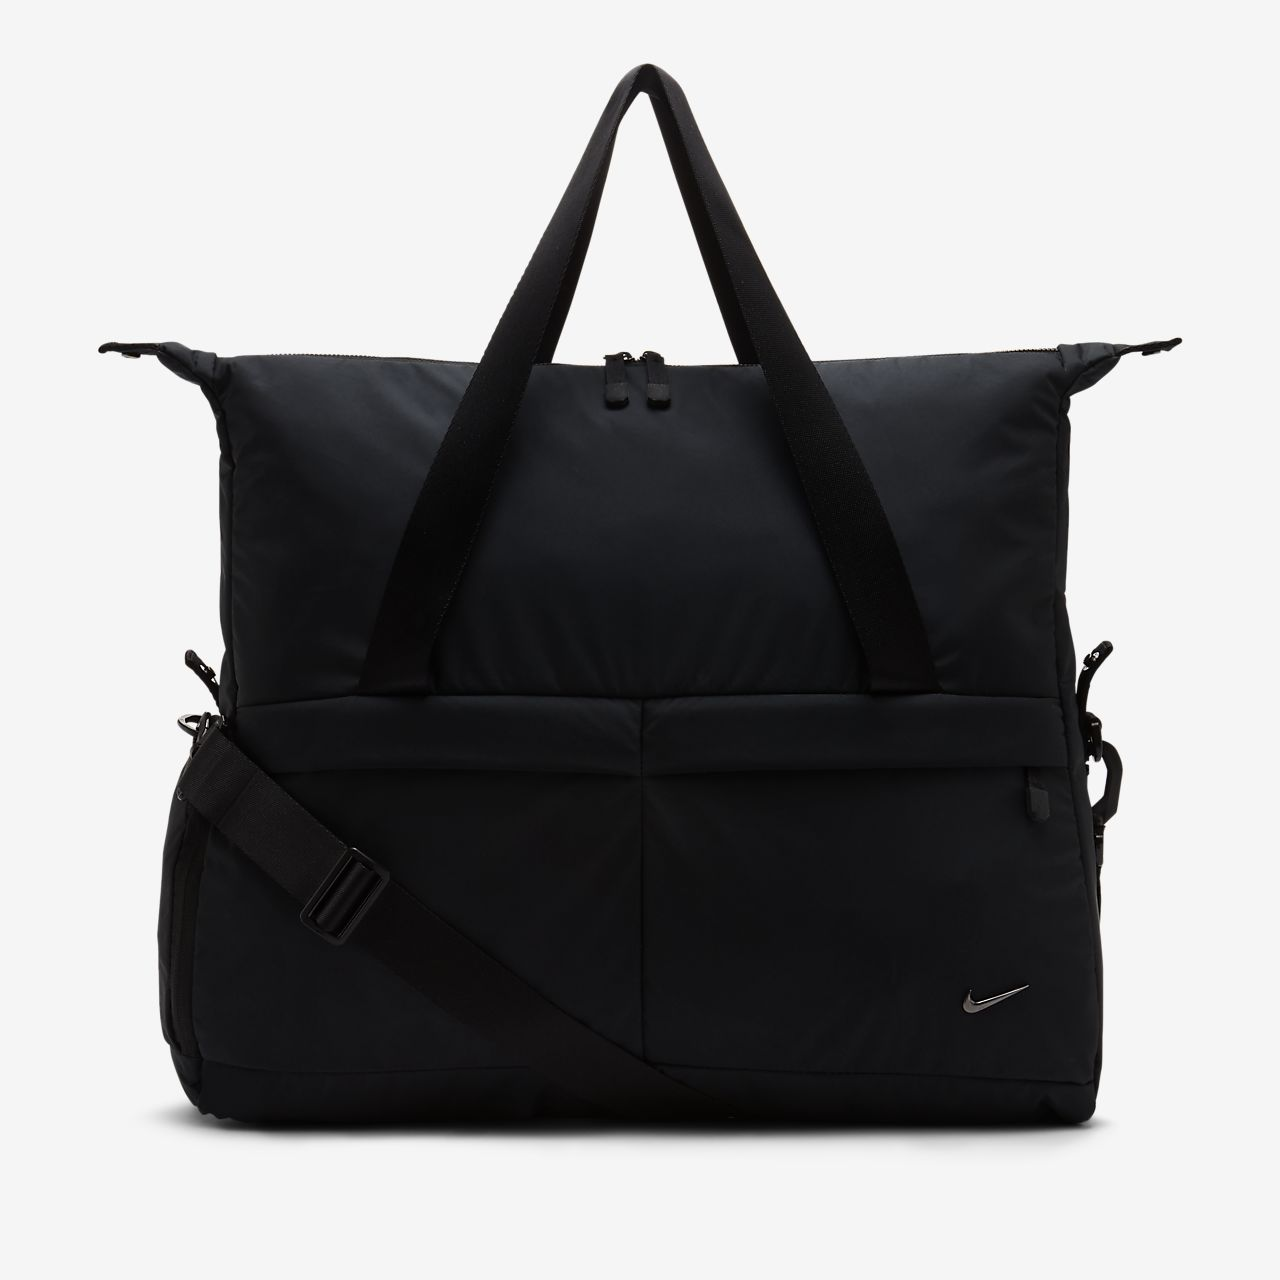 217d9c22da2 Nike Club Training Bag. Nike.com MY